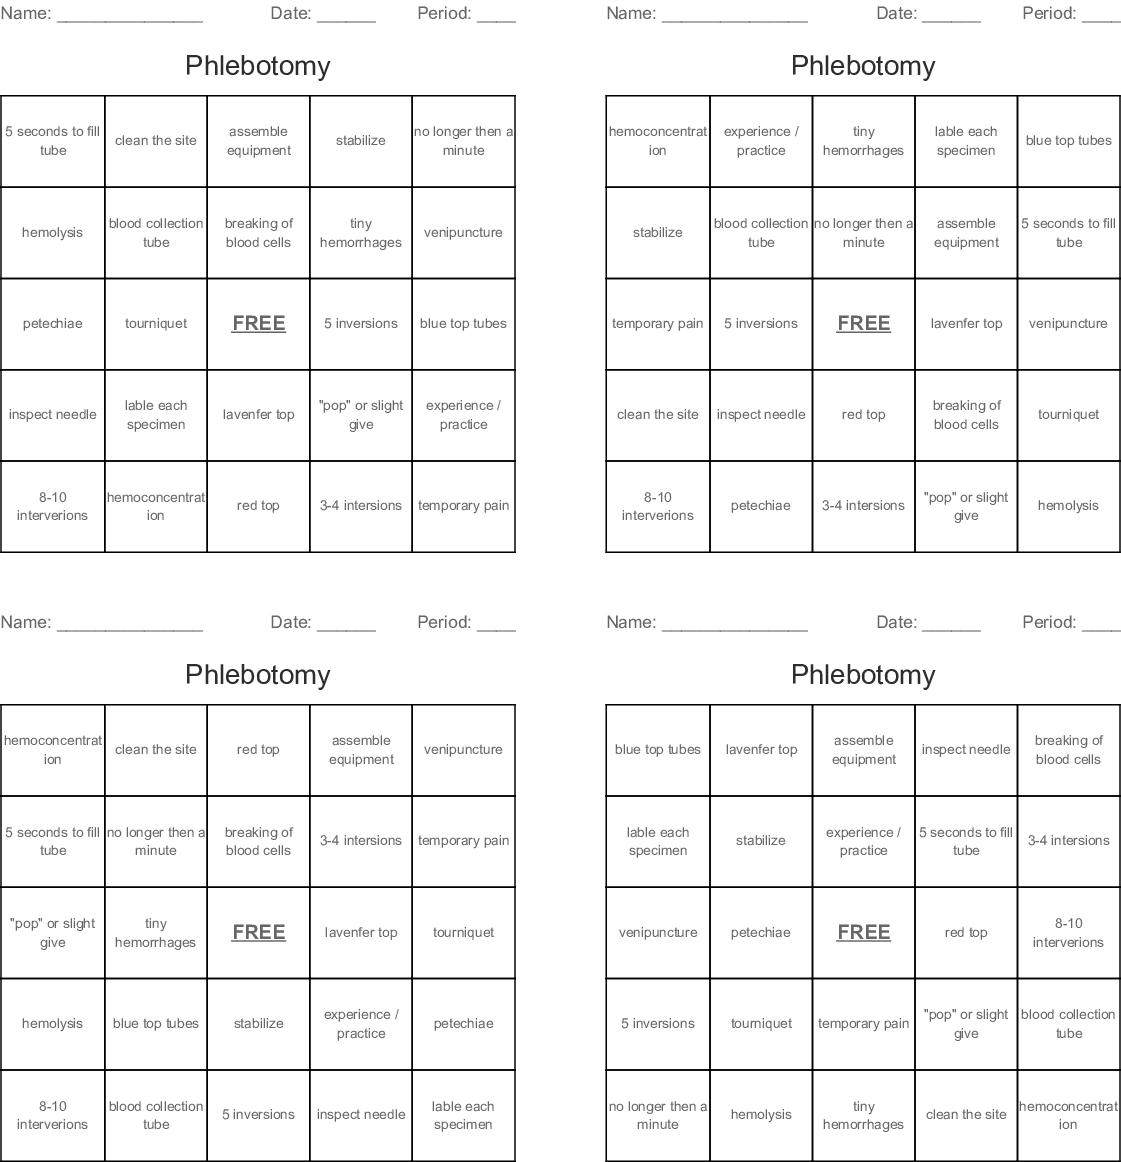 Phlebotomy Word Search